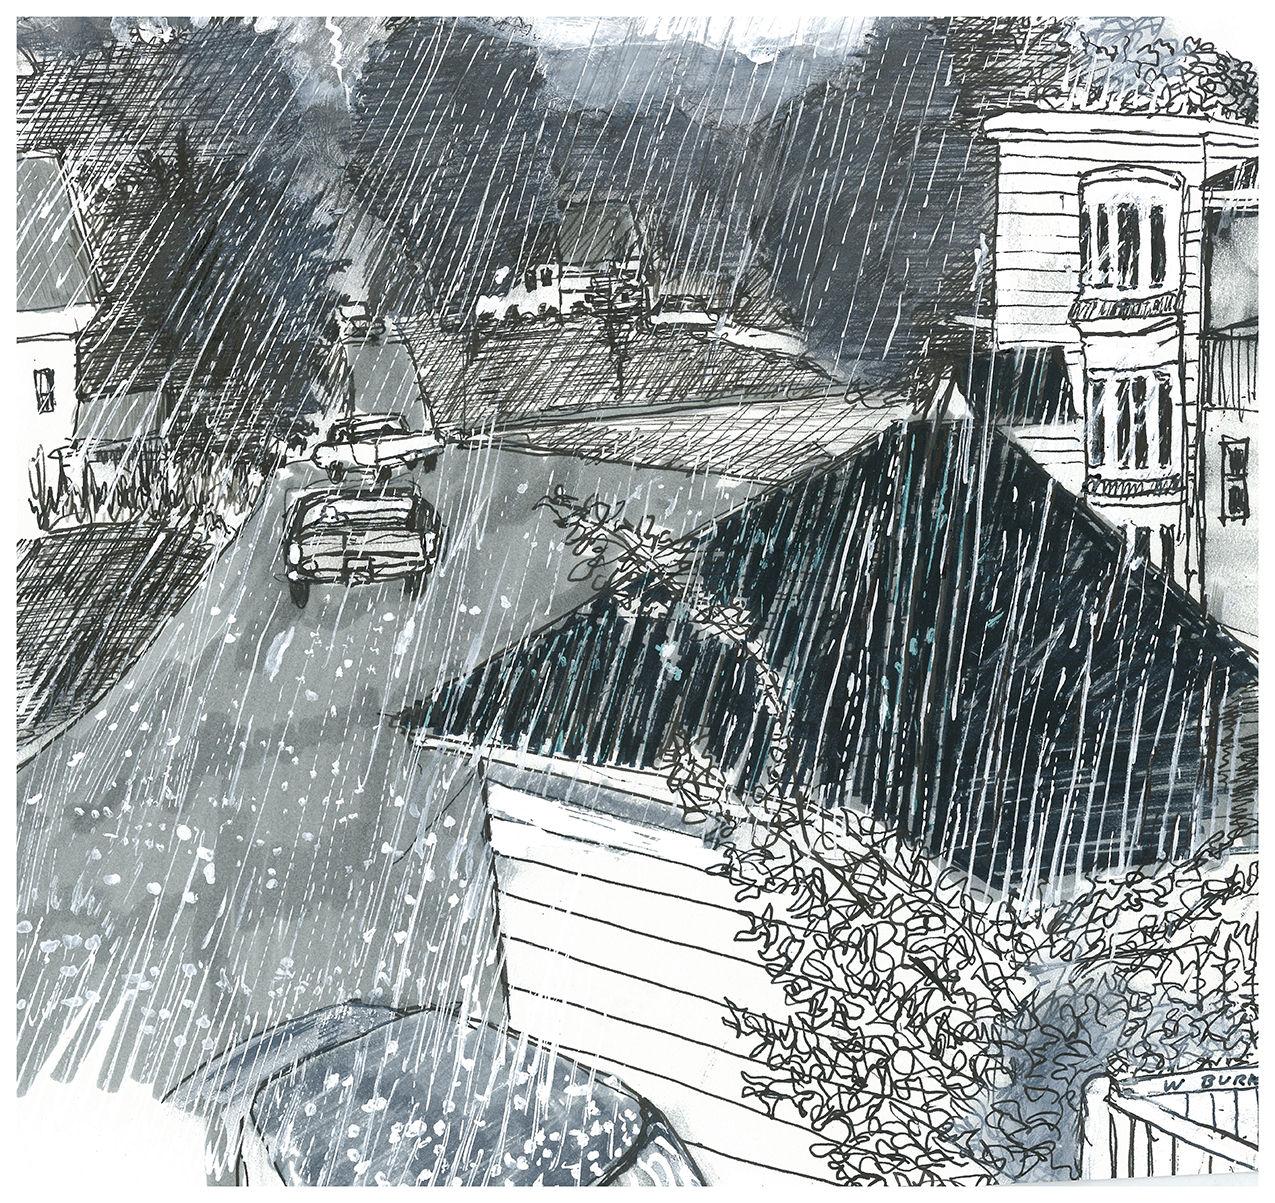 Rainy Day by Wayne F Burke: ink drawing of a small town in the rain